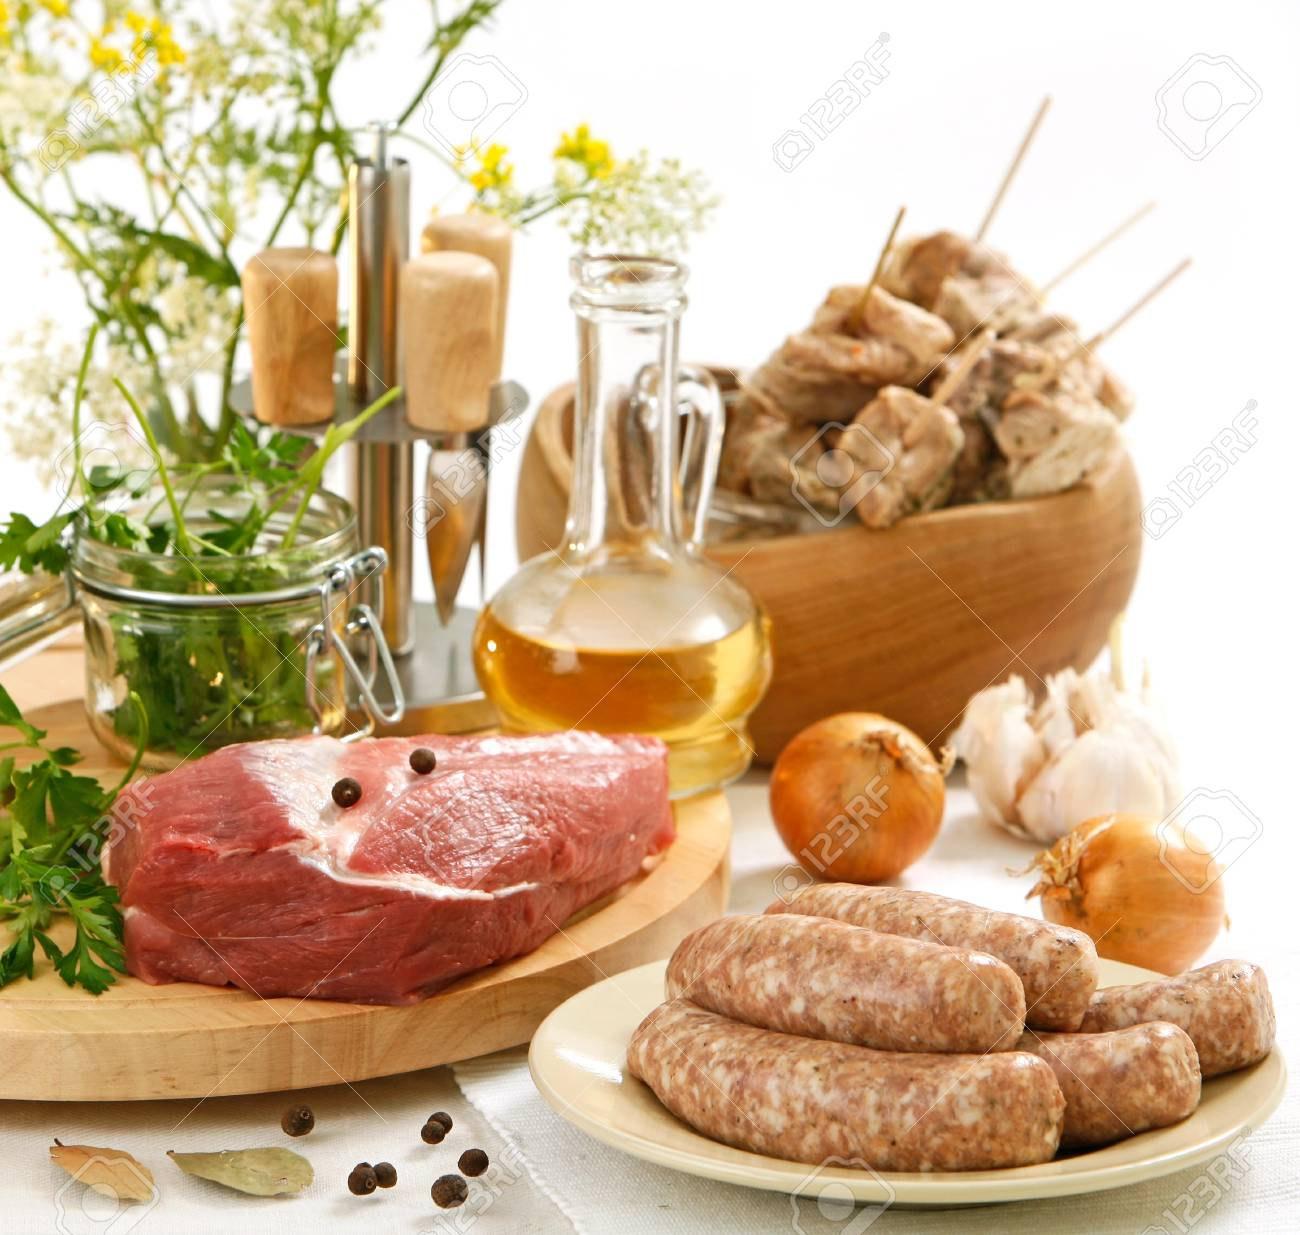 various raw meat and sausages - 18500497